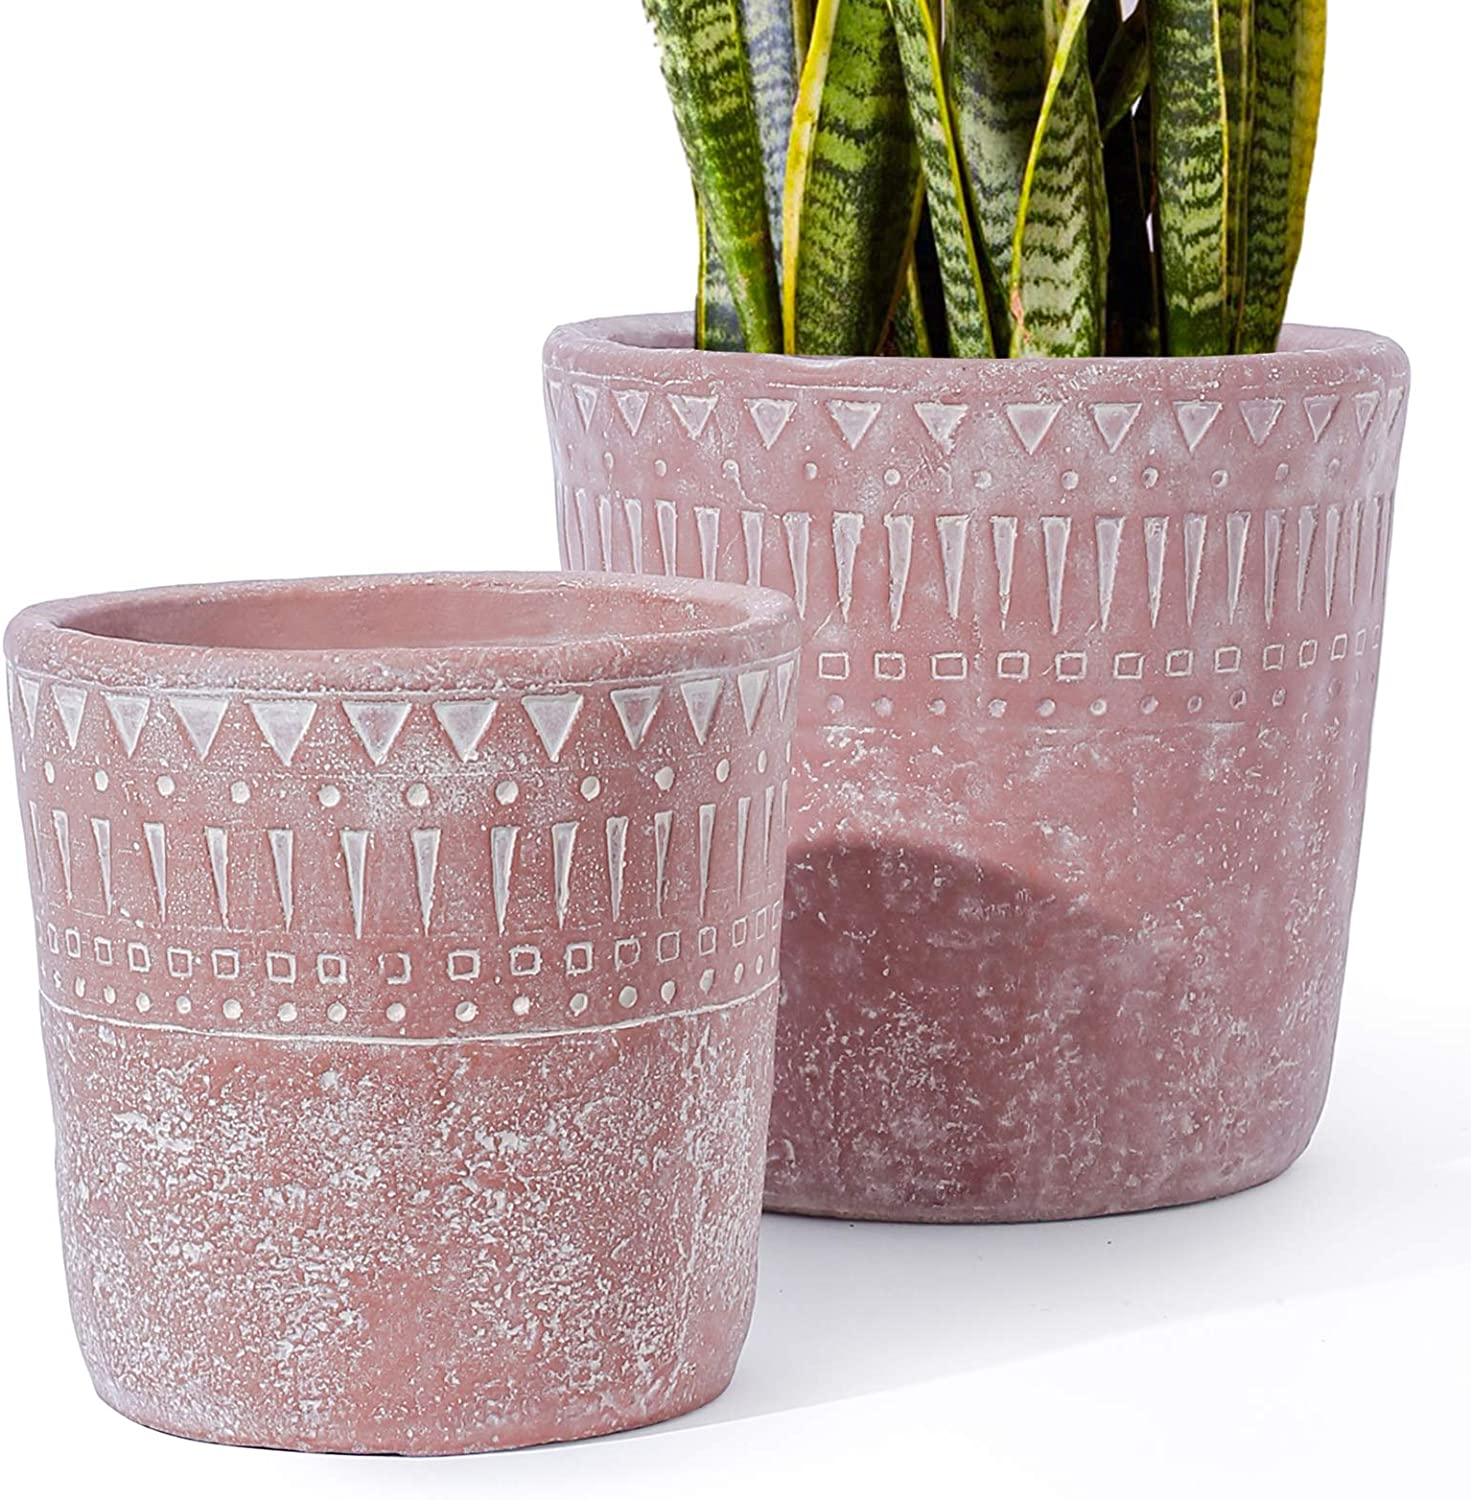 LE TAUCI 7+5.5 Inch Plant Pot with Drainage, Concrete Planter, Cement Pots for Plants, Outdoor Flower Planters, Medium to Large Planters, Mid Century Decor, Set of 2, Red